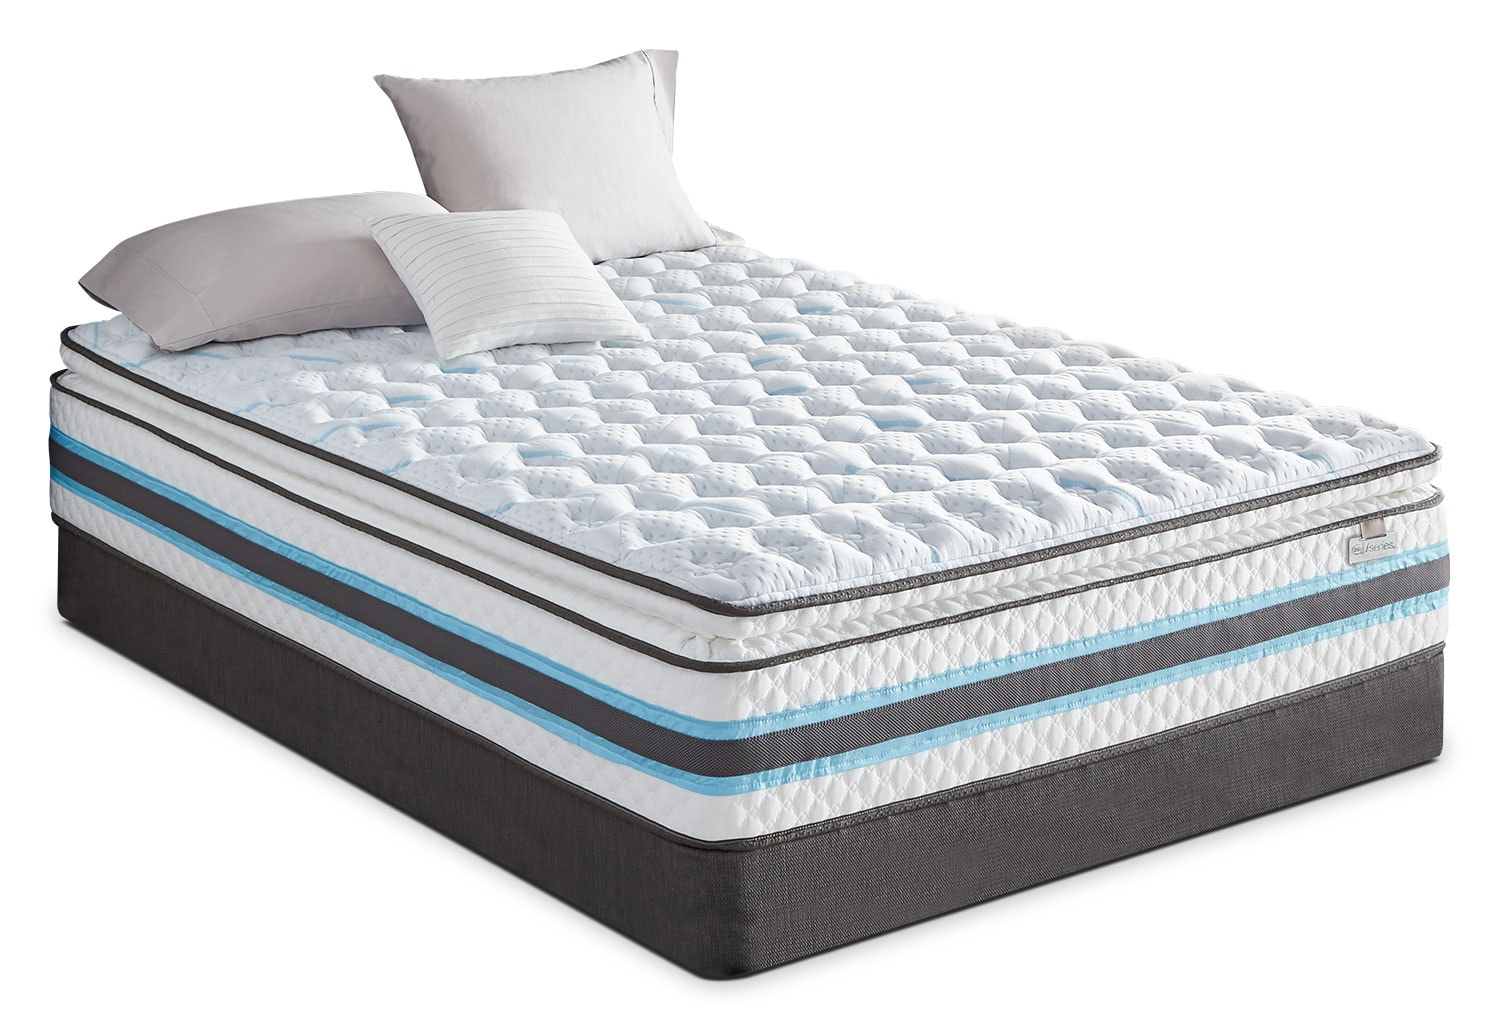 Serta iSeries® Breathtaking Pillow-Top Firm Queen Mattress Set